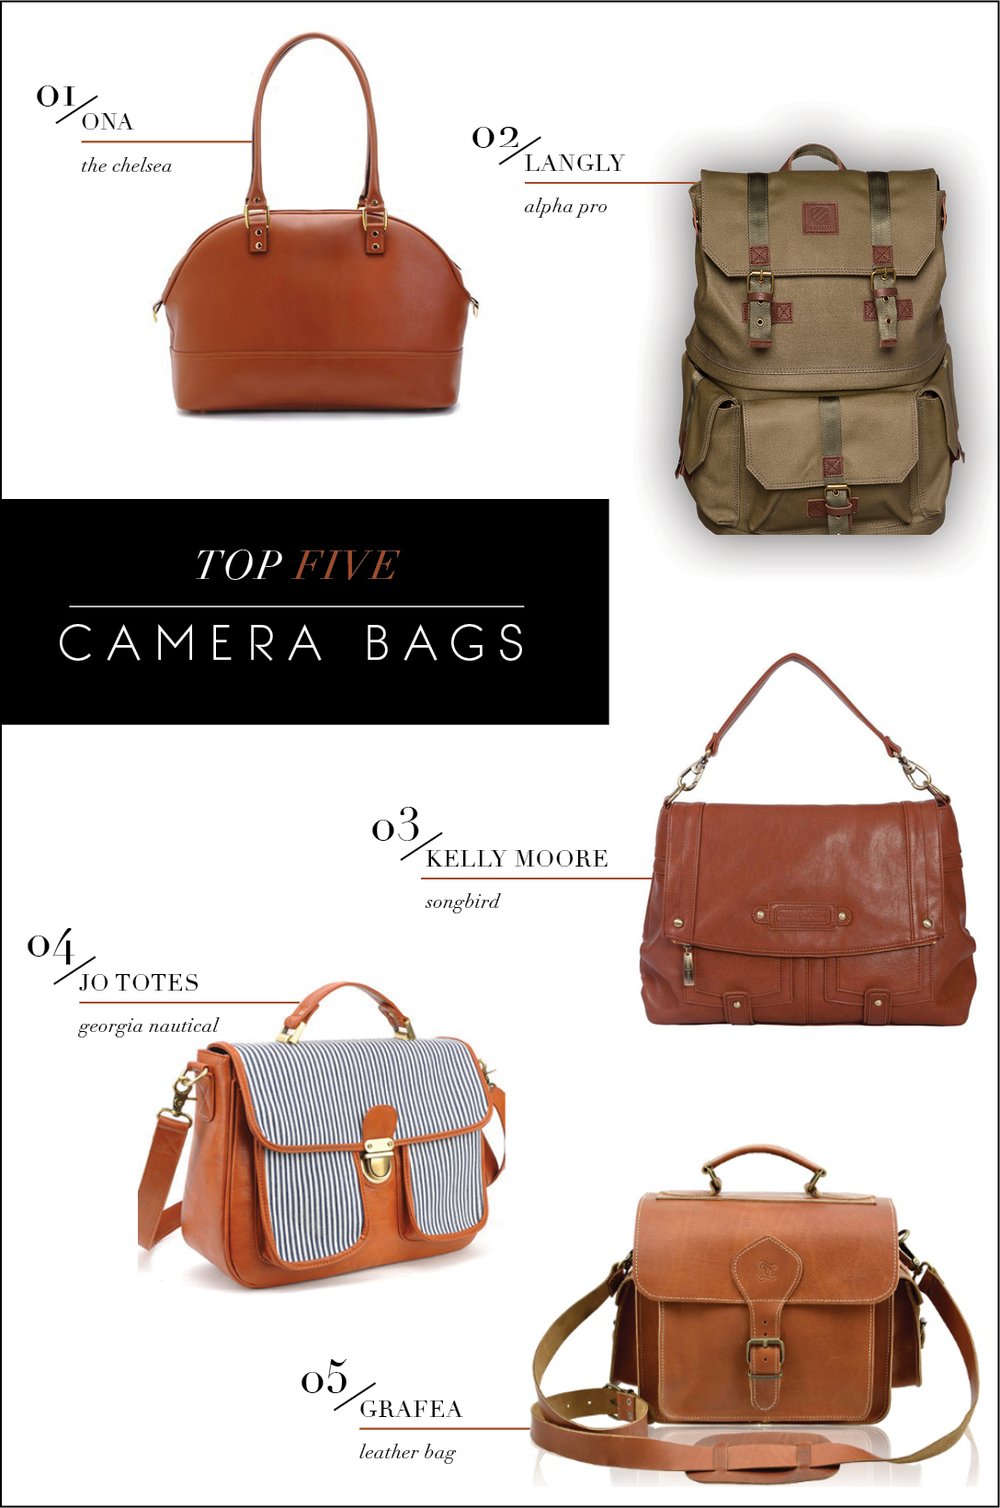 Form & Function | Favorite Camera bag picks from Lily Glass